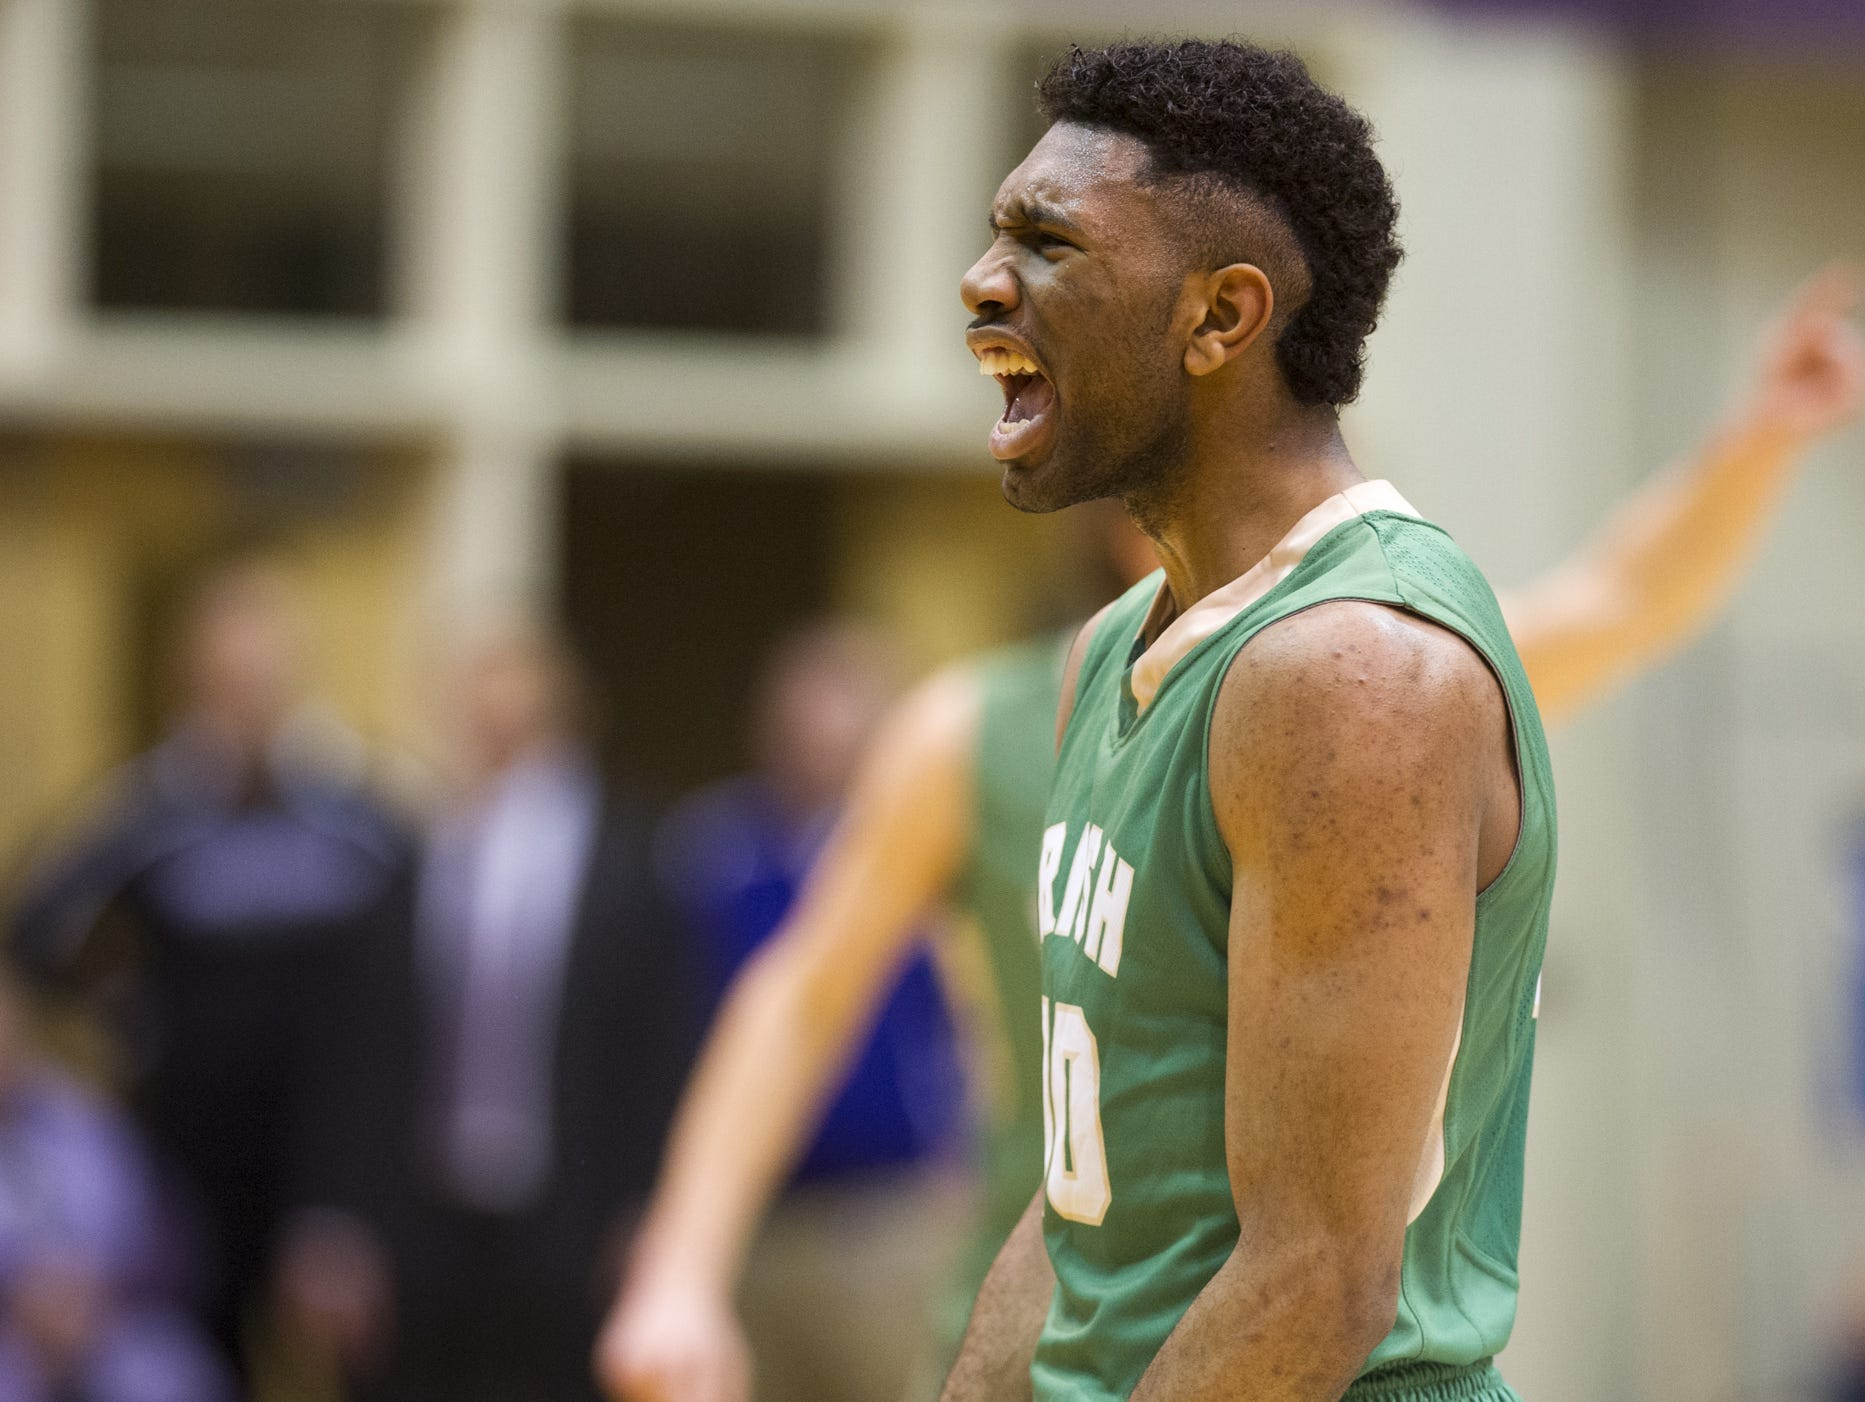 Cathedral's Eron Gordon should be involved in the Mr. Basketball conversation.